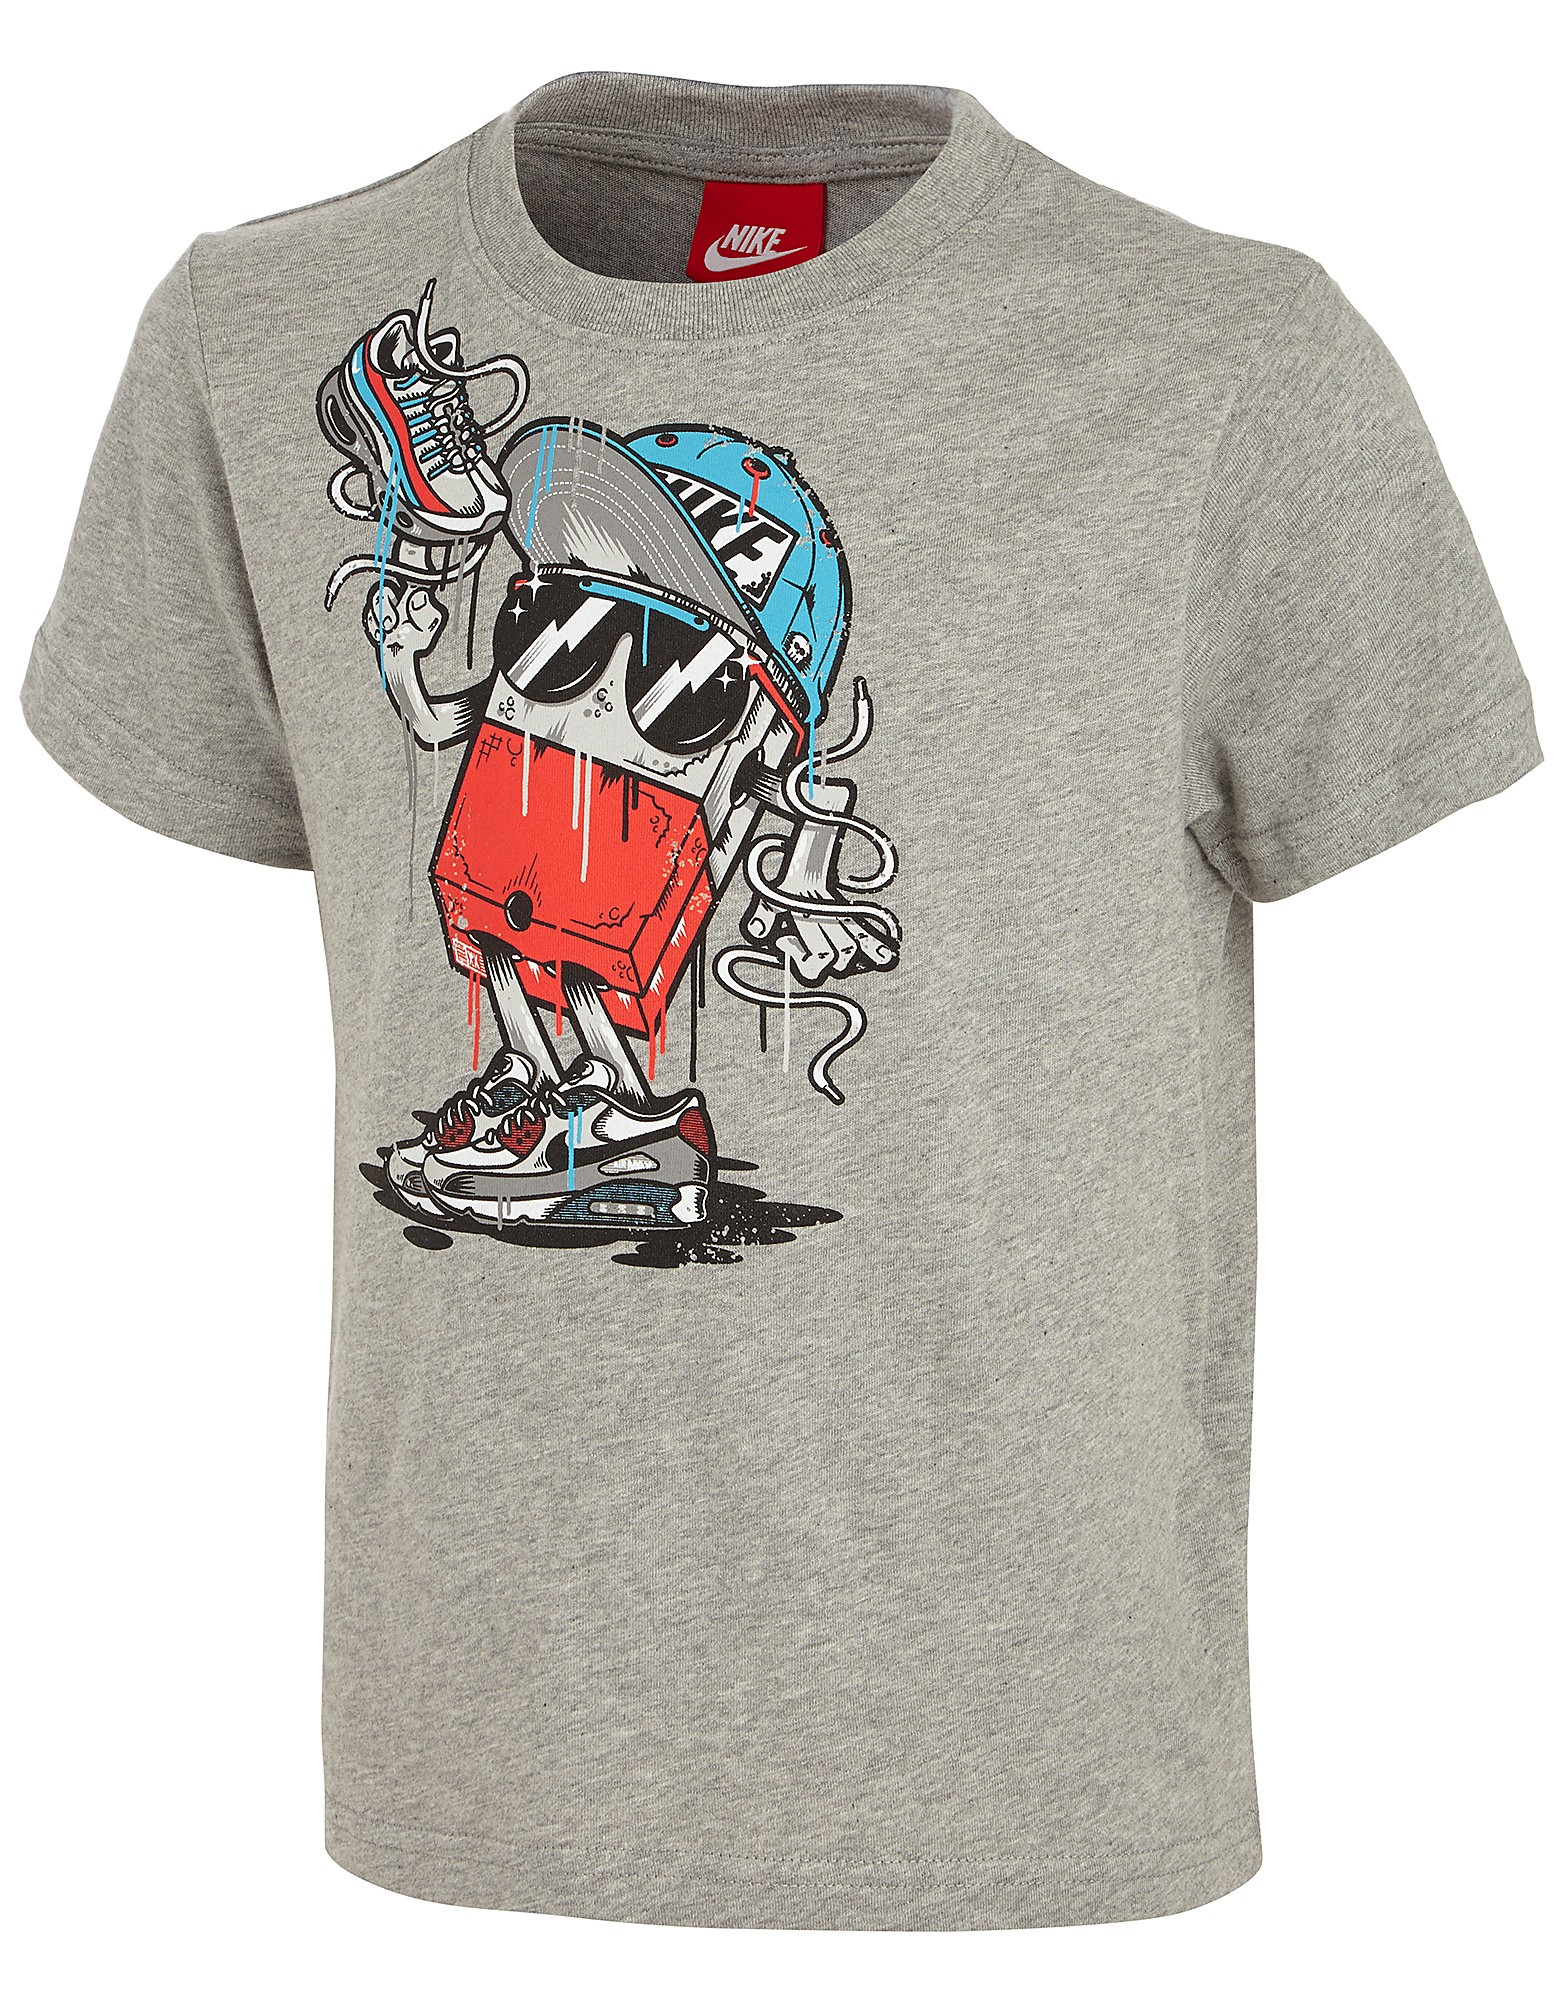 Nike Sneaker Head T-Shirt Childrens product image